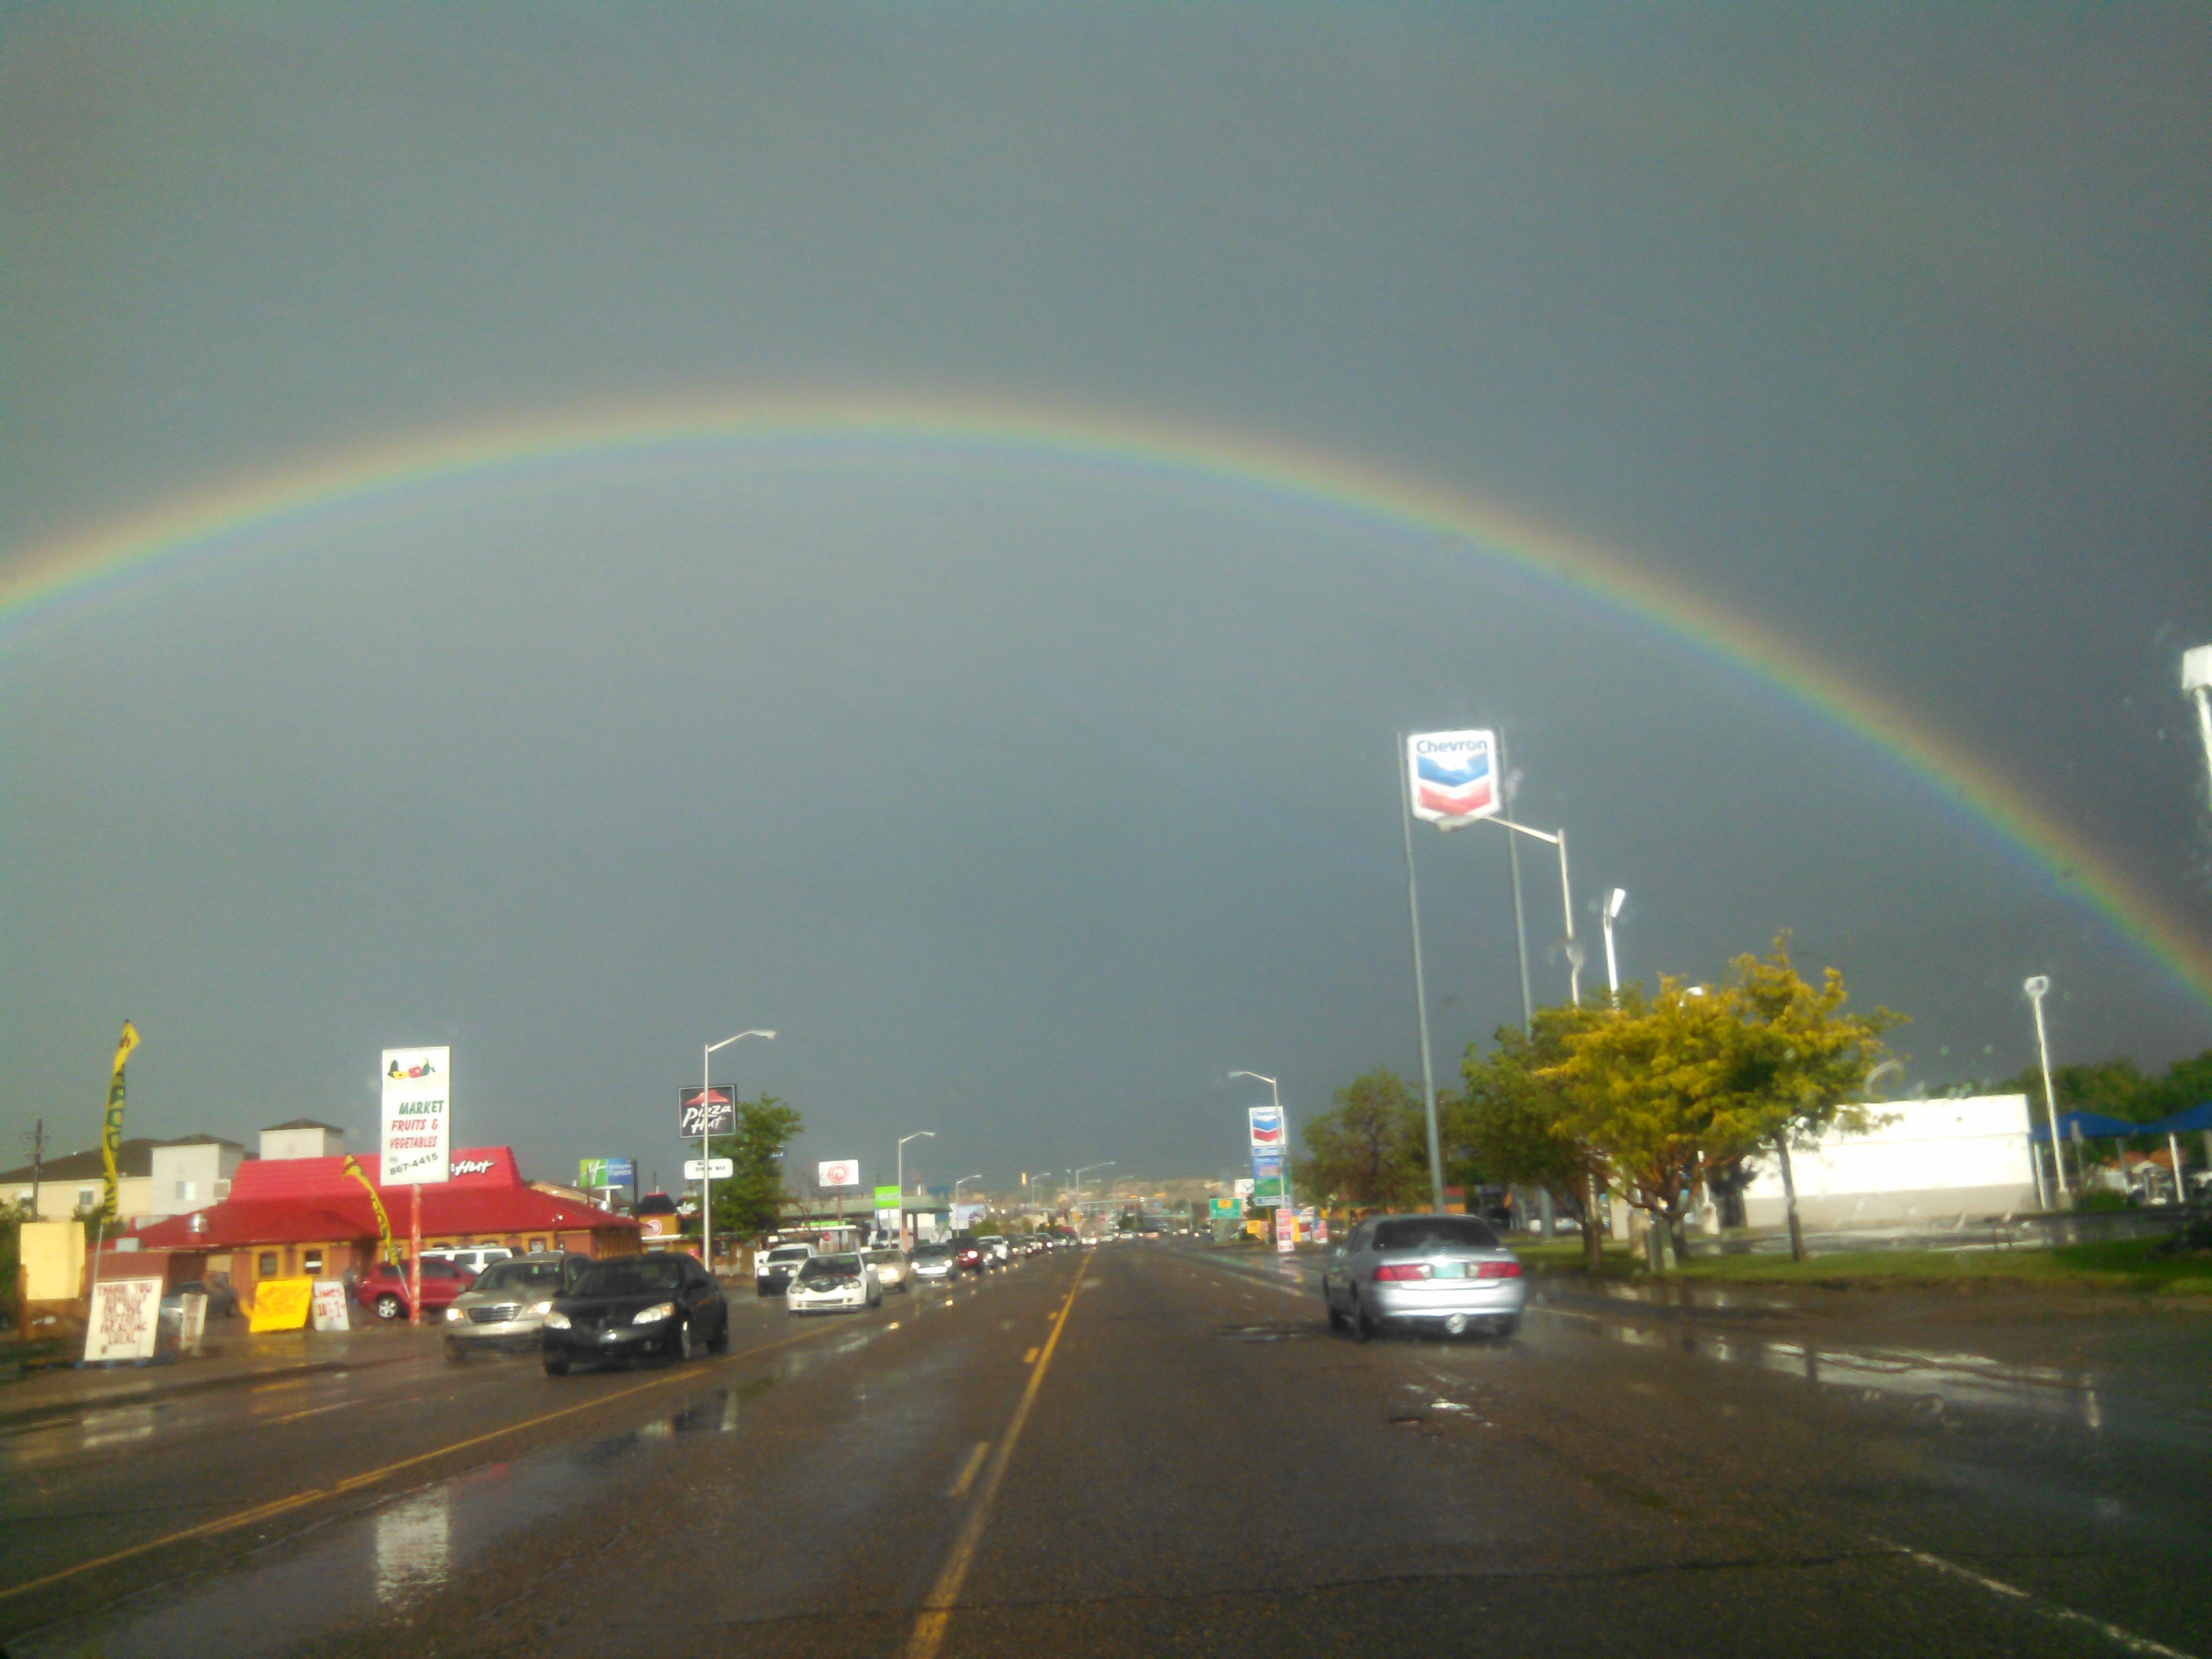 The End of Forrest Fenn's Rainbow or Just the End – Capt